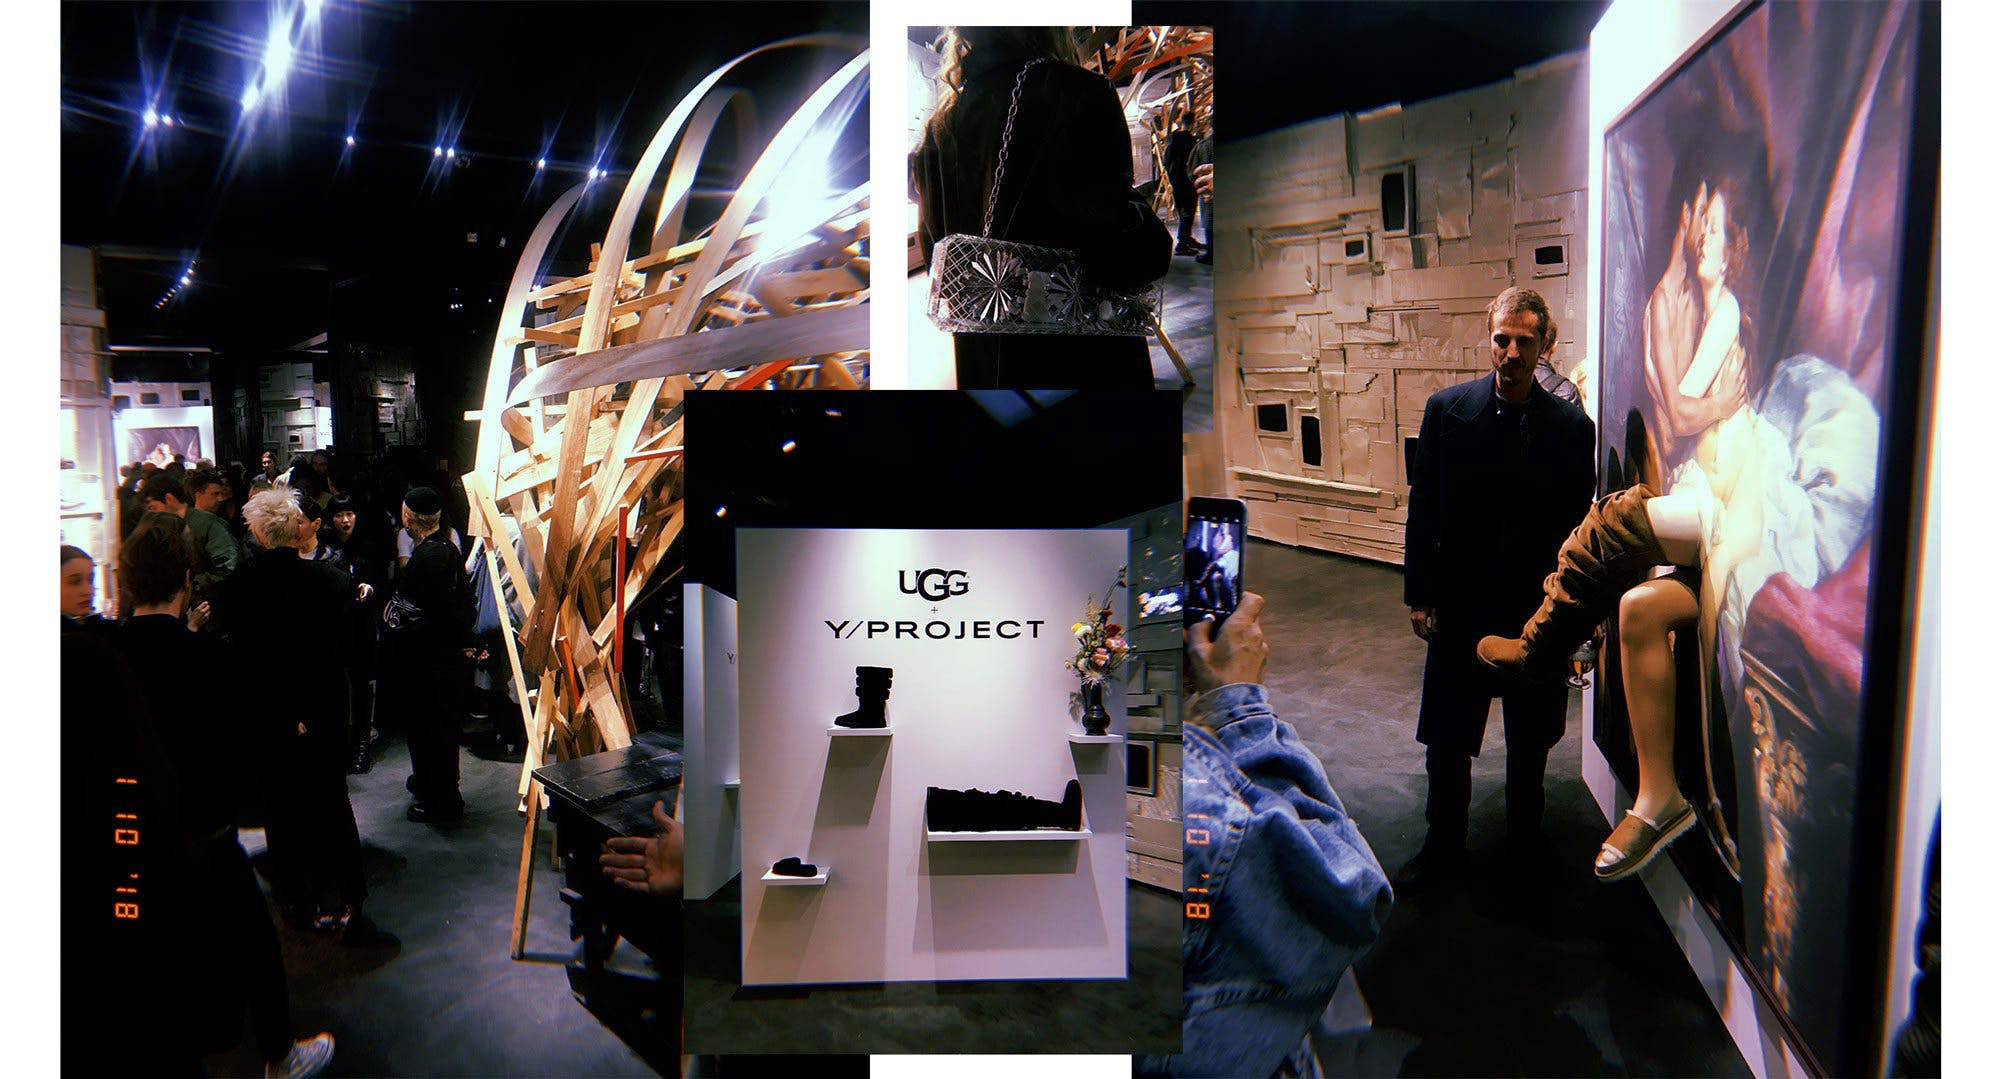 leclaireur-ugg-yproject-launch-light-4